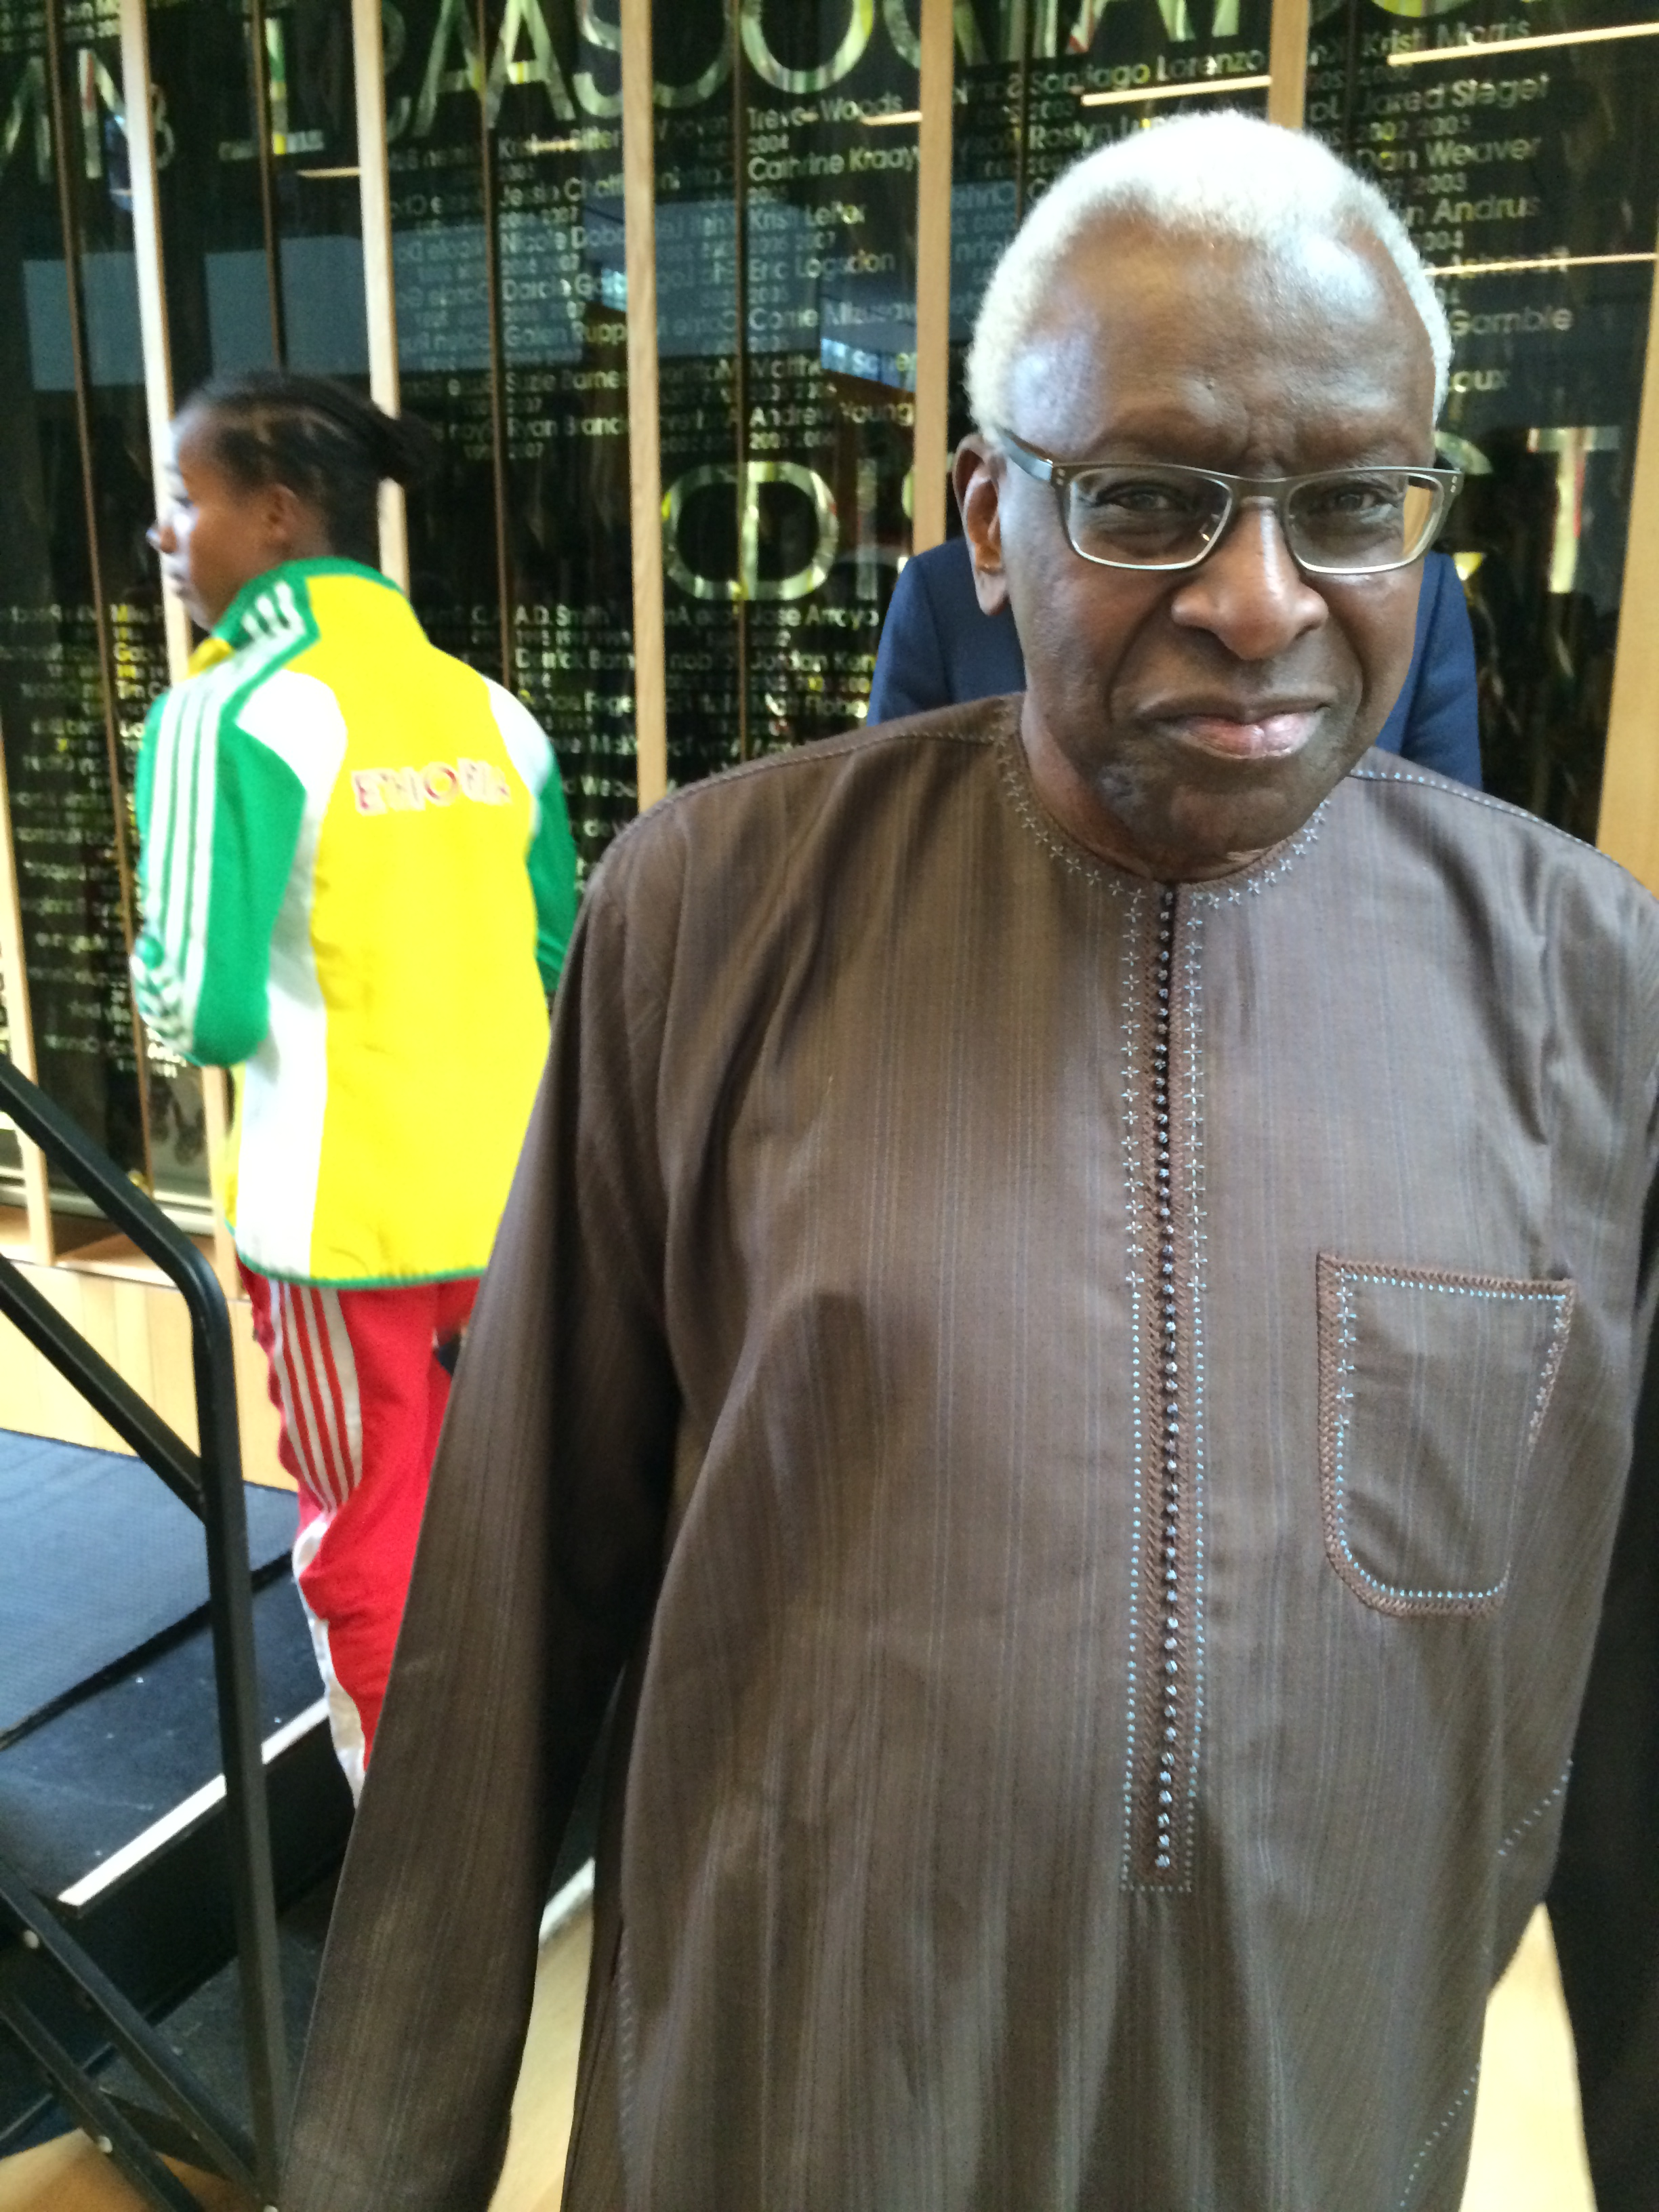 IAAF president Lamine Diack at Monday's news conference on the University of Oregon campus